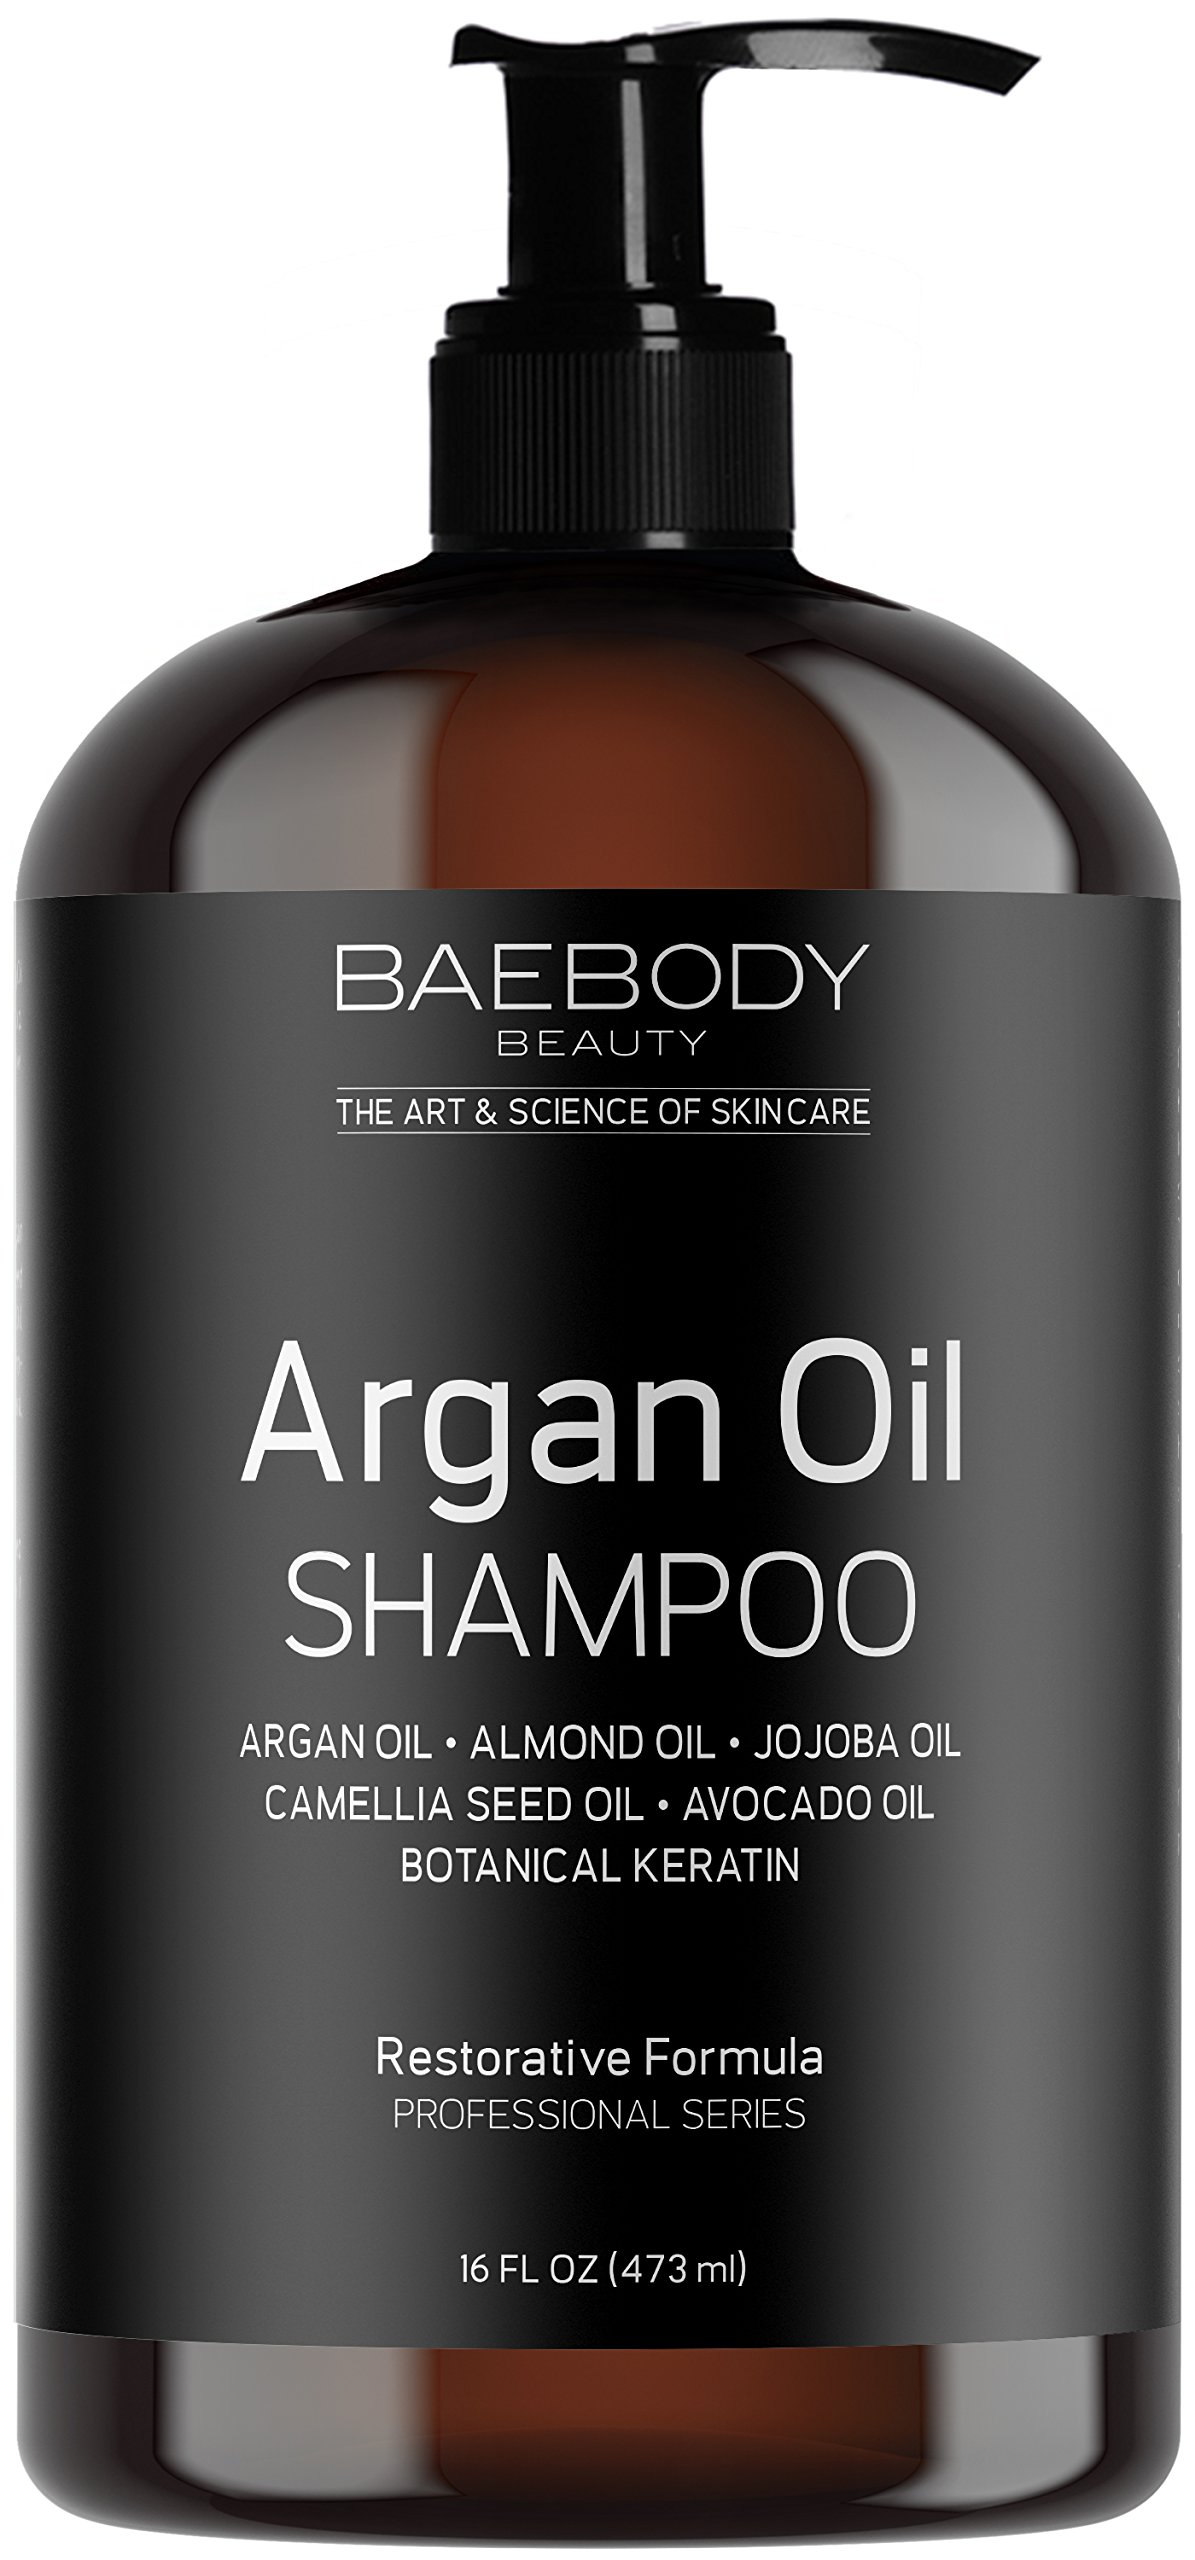 Baebody Moroccan Argan Oil Shampoo 16 Oz - Volumizing & Moisturizing, Gentle on Curly & Color Treated Hair, for Men & Women. Infused with Keratin. by Baebody